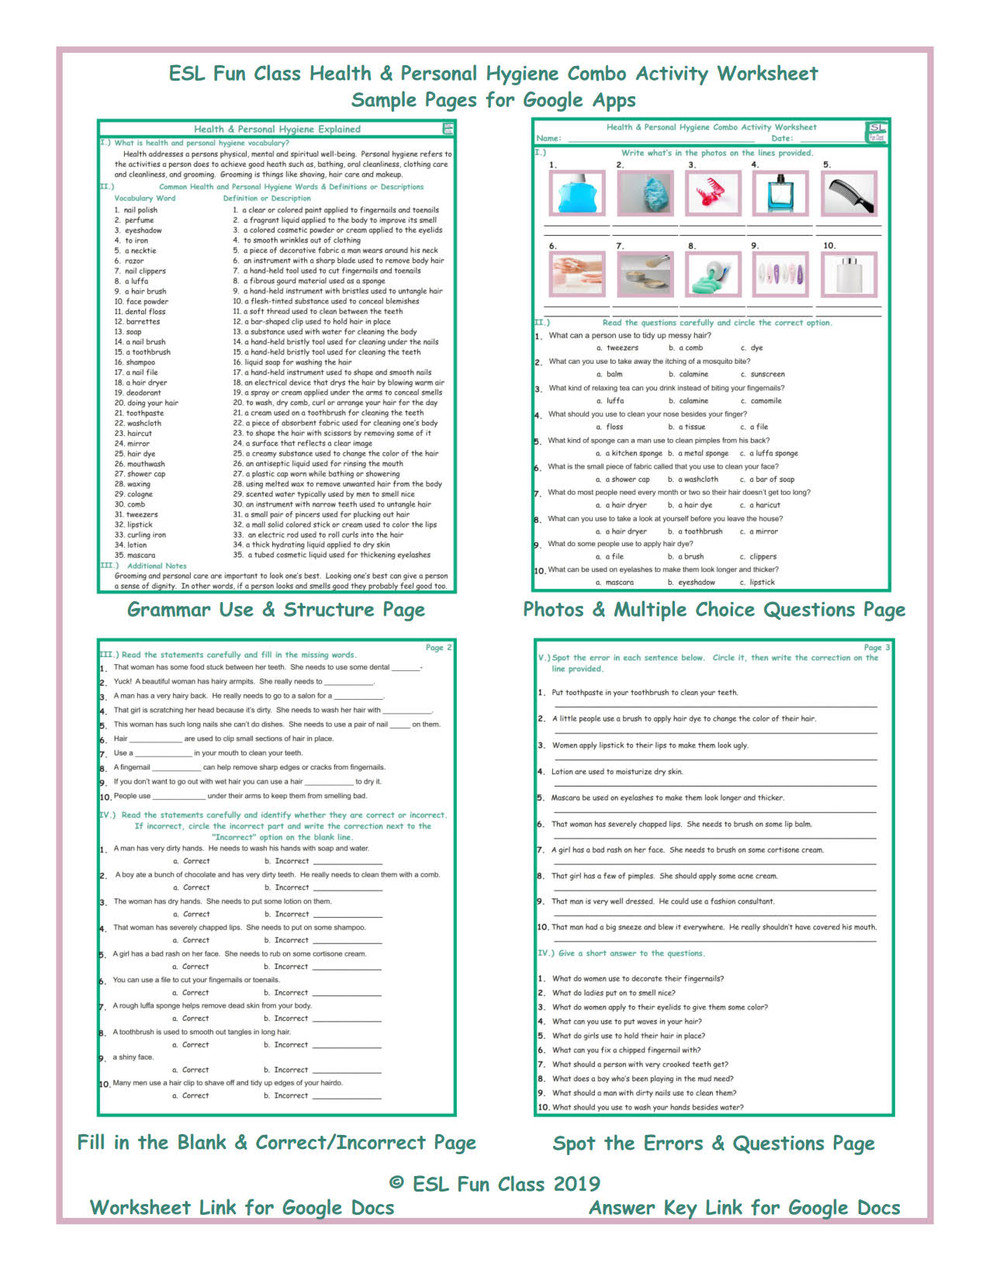 Health \u0026 Personal Hygiene Interactive Worksheets for Google Apps LINKS -  Amped Up Learning [ 1280 x 989 Pixel ]